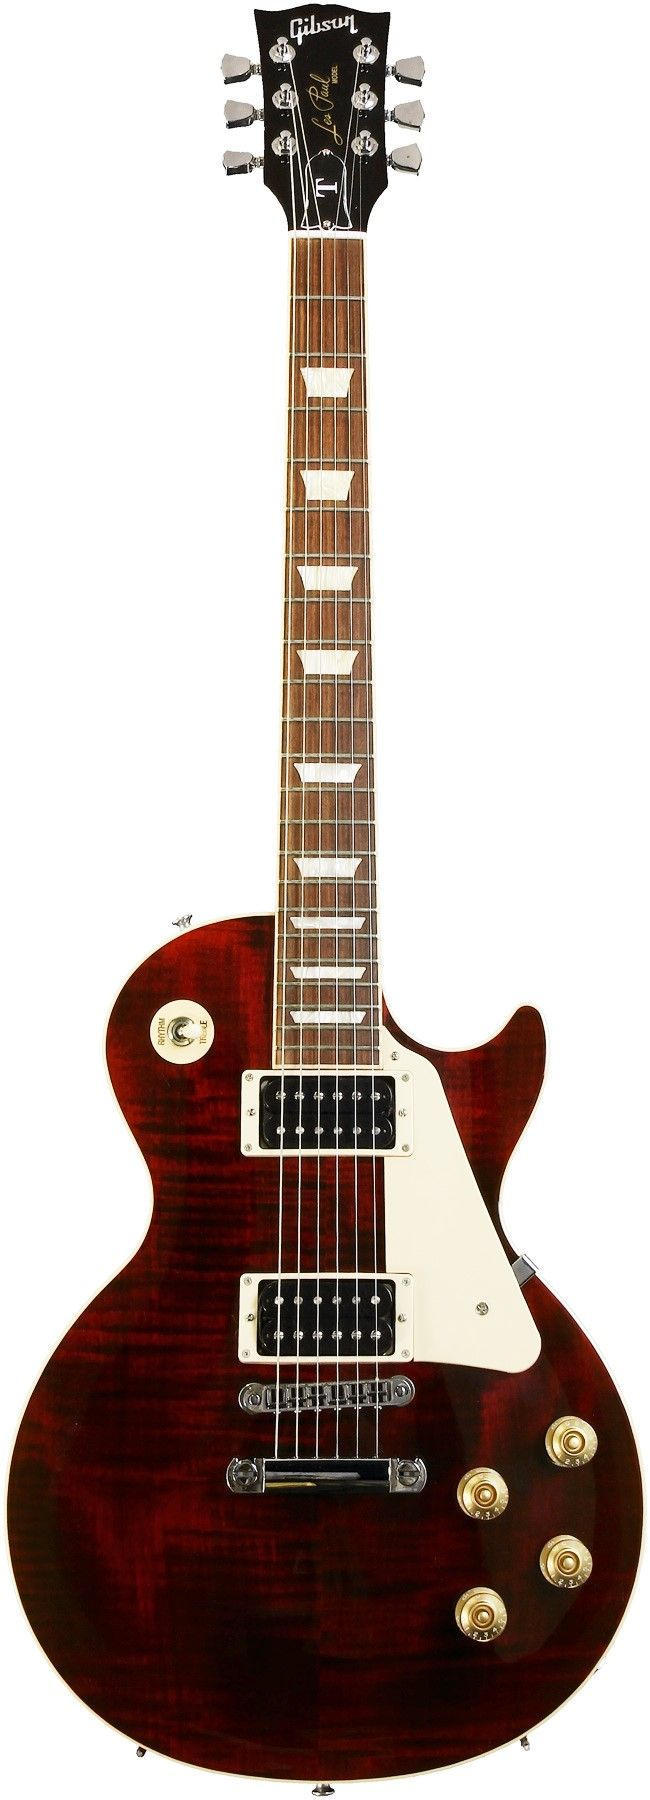 Gibson Les Paul T in Worn Cherry (2017)